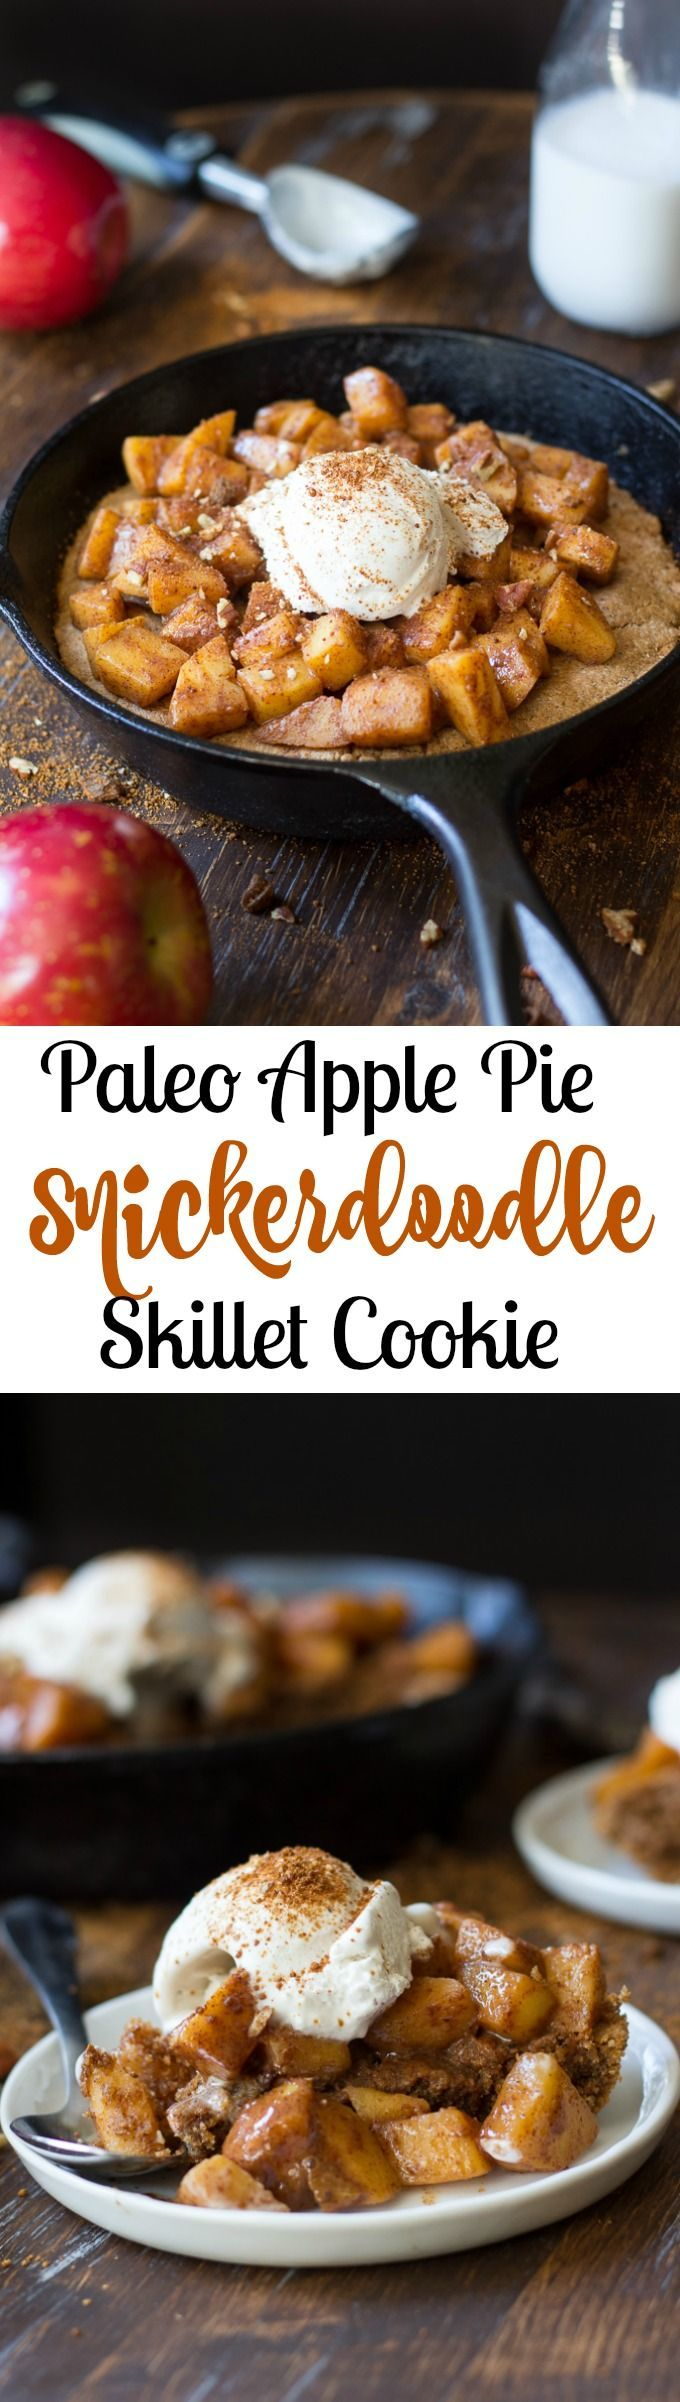 paleo apple pie snickerdoodle skillet cookie - chewy paleo snickerdoodle skillet cookie topped with healthy, refined sugar free apple pie filling!  Amazing Paleo dessert!